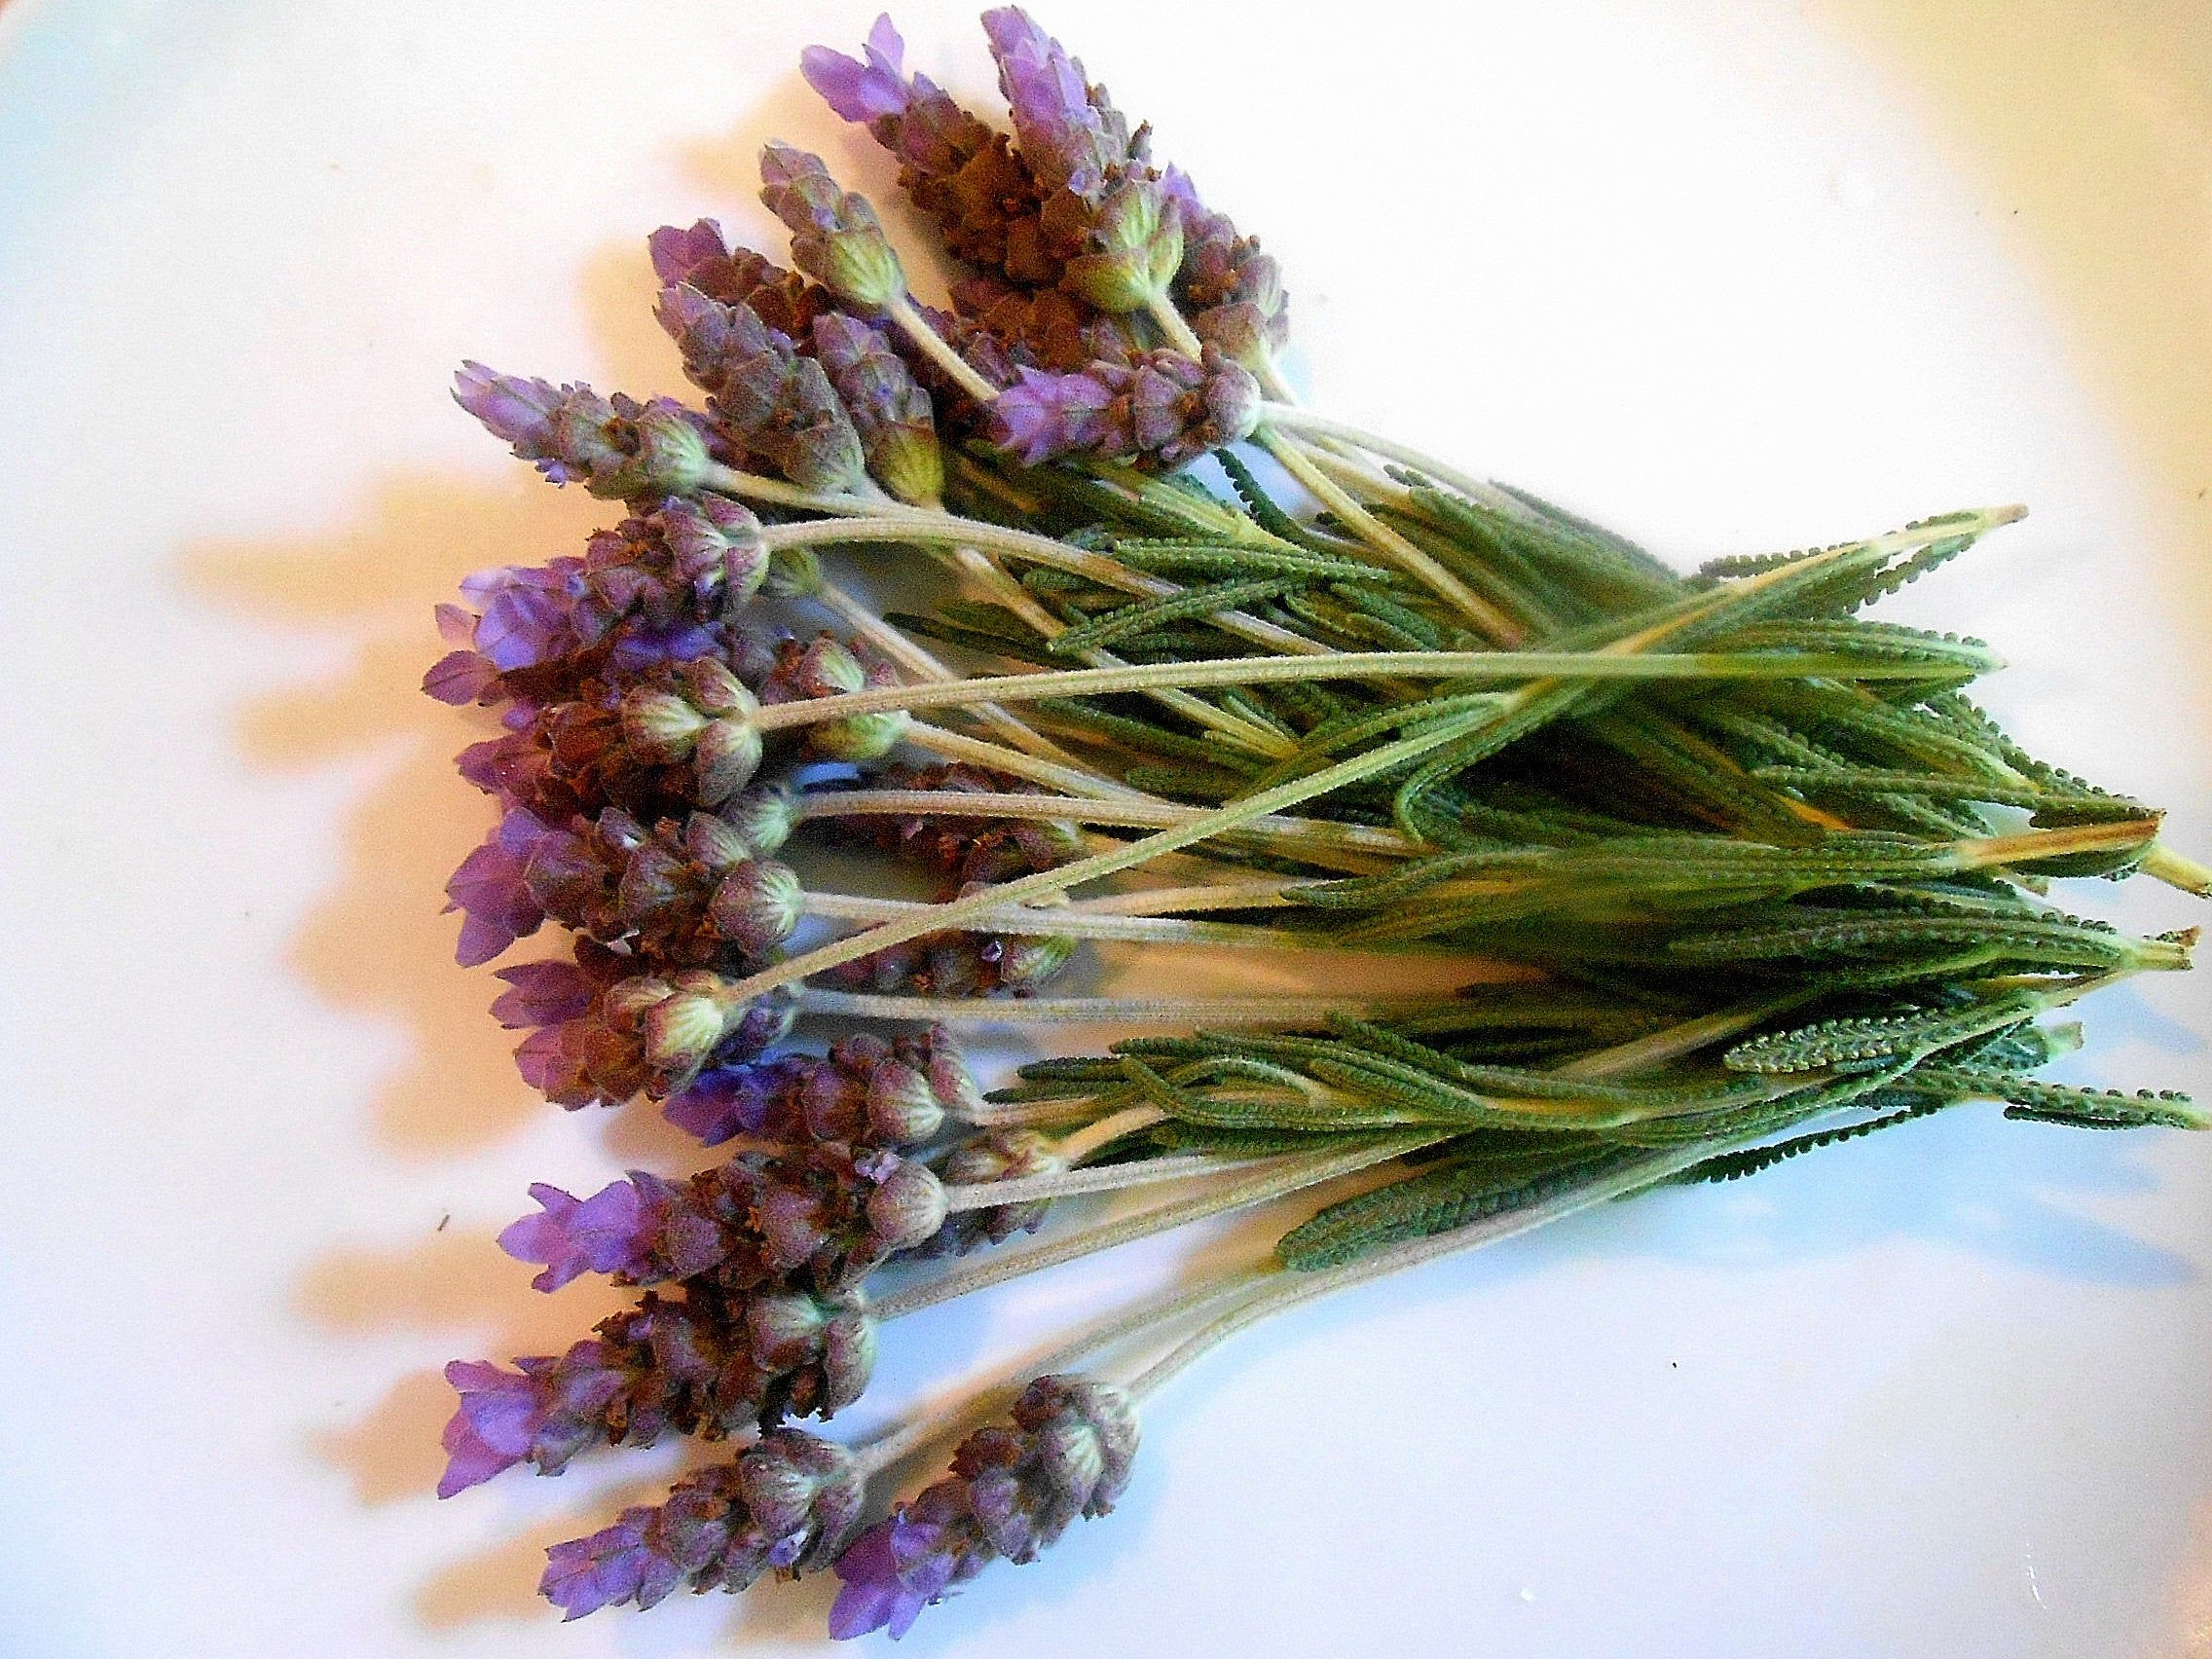 Fresh Lavender Flowers Lavender Branches Fragrant Edible Decorative 25 Stems Restaurant Supply Overnight In 2020 Culinary Lavender Organic Herbs Lavender Flowers